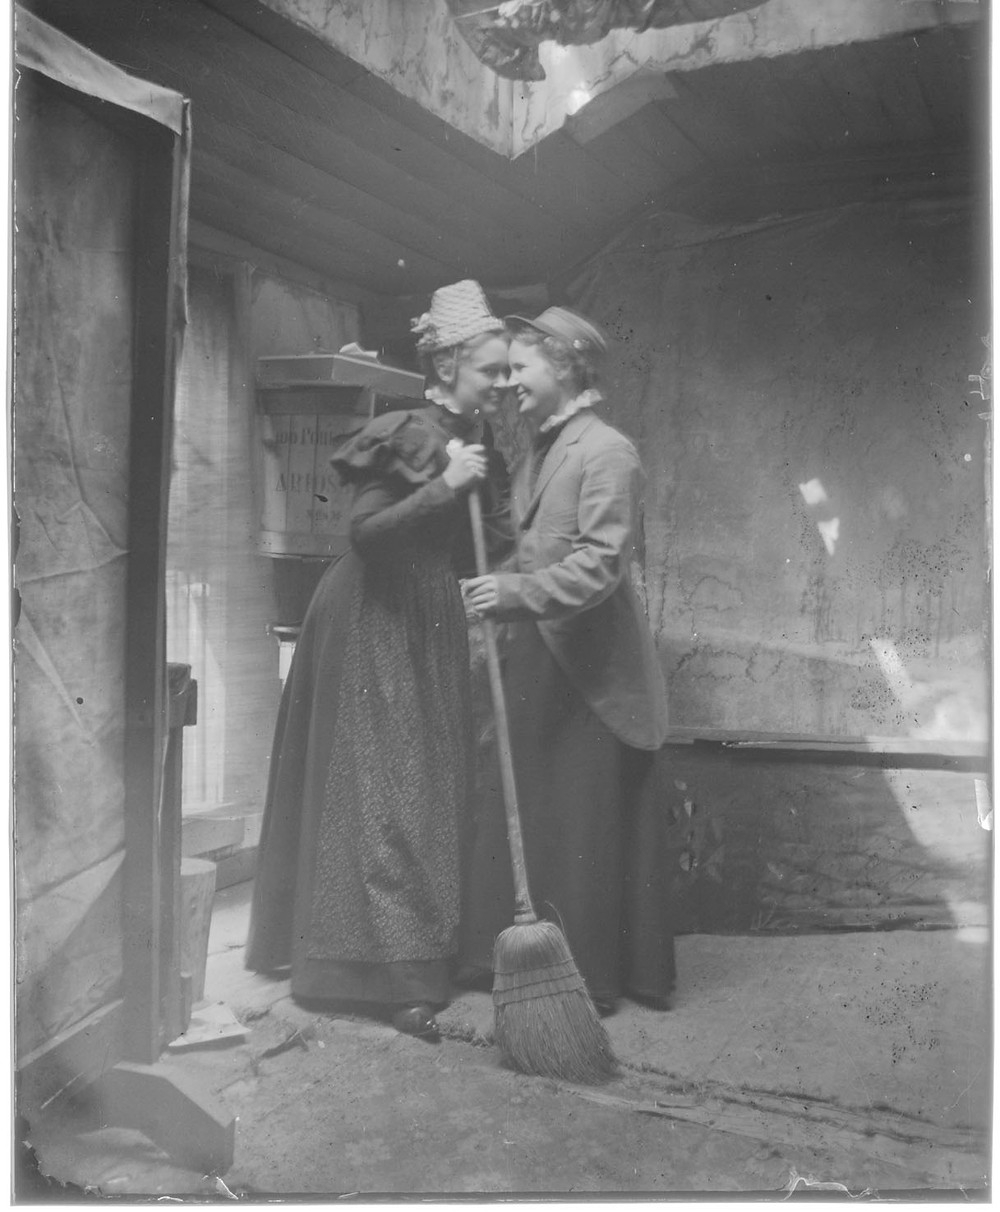 Image created by Breckenridge Heritage Alliance. Black and white photo of two people holding a broom smiling